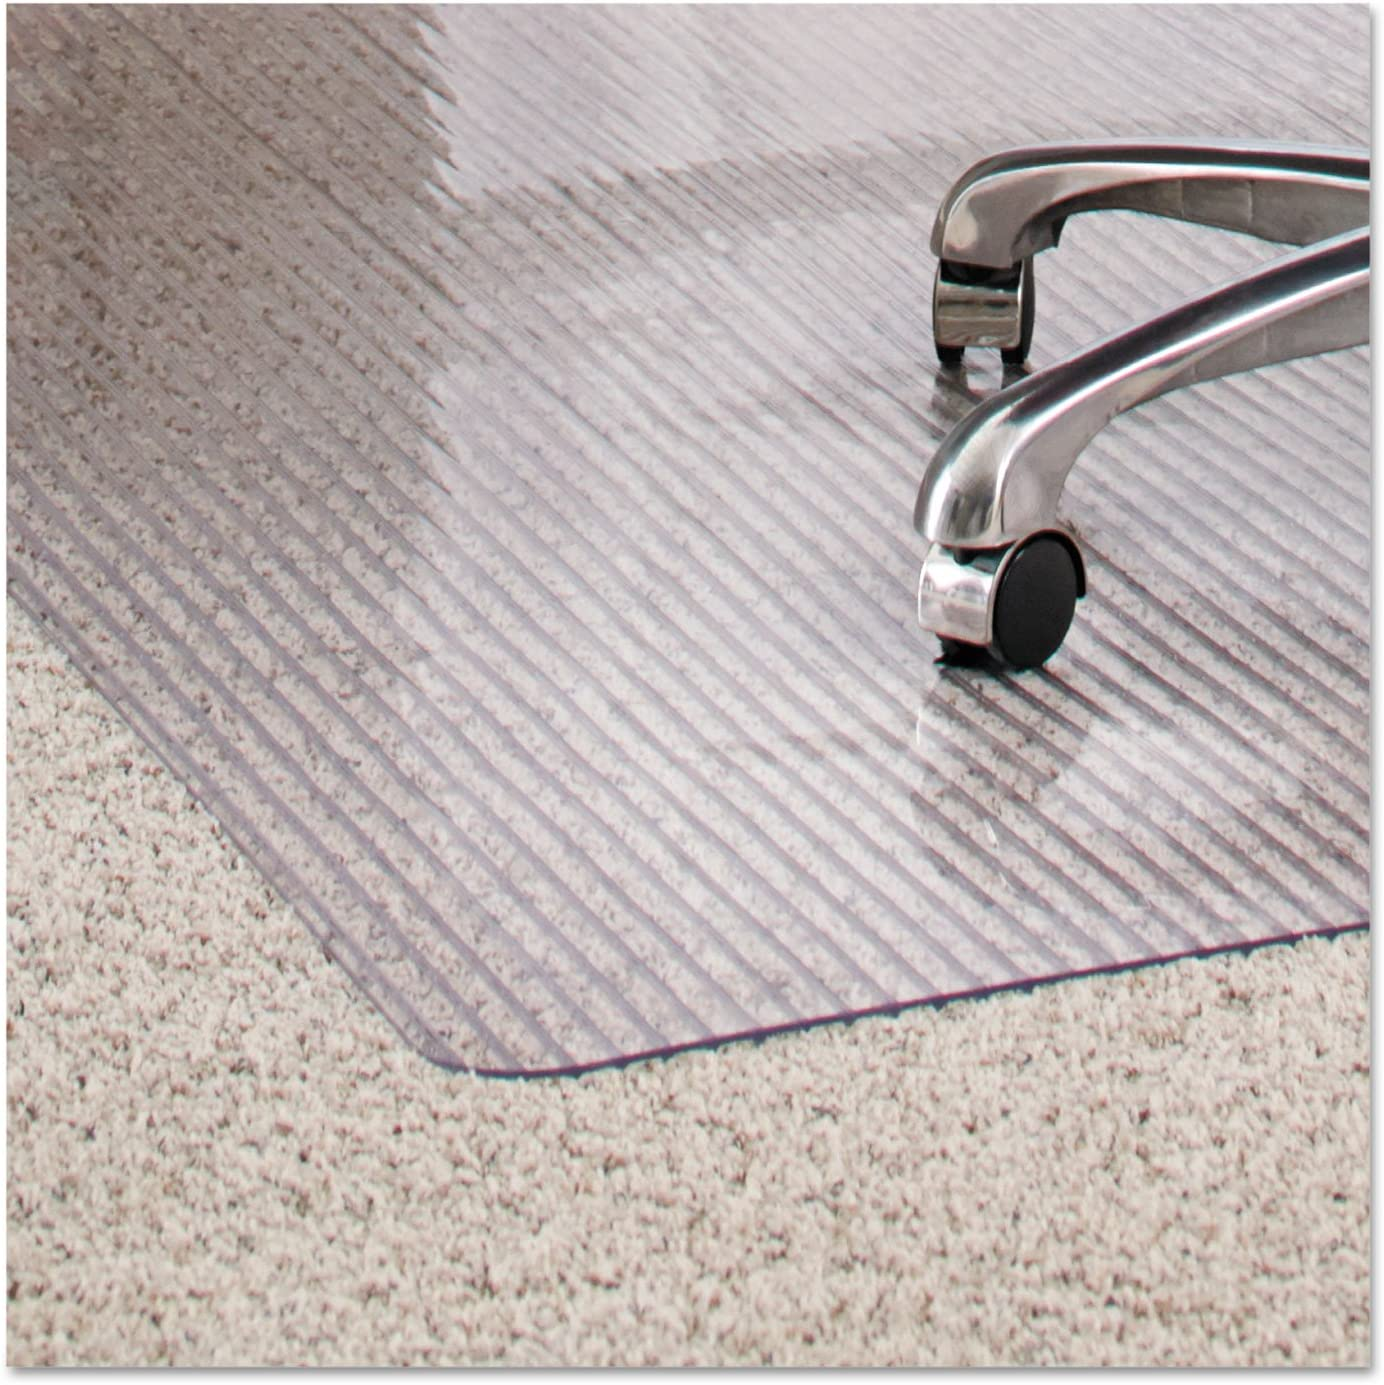 ES Robbins New product type Dimensions Chair Mat Dedication for x Carpet 48 Clear 36